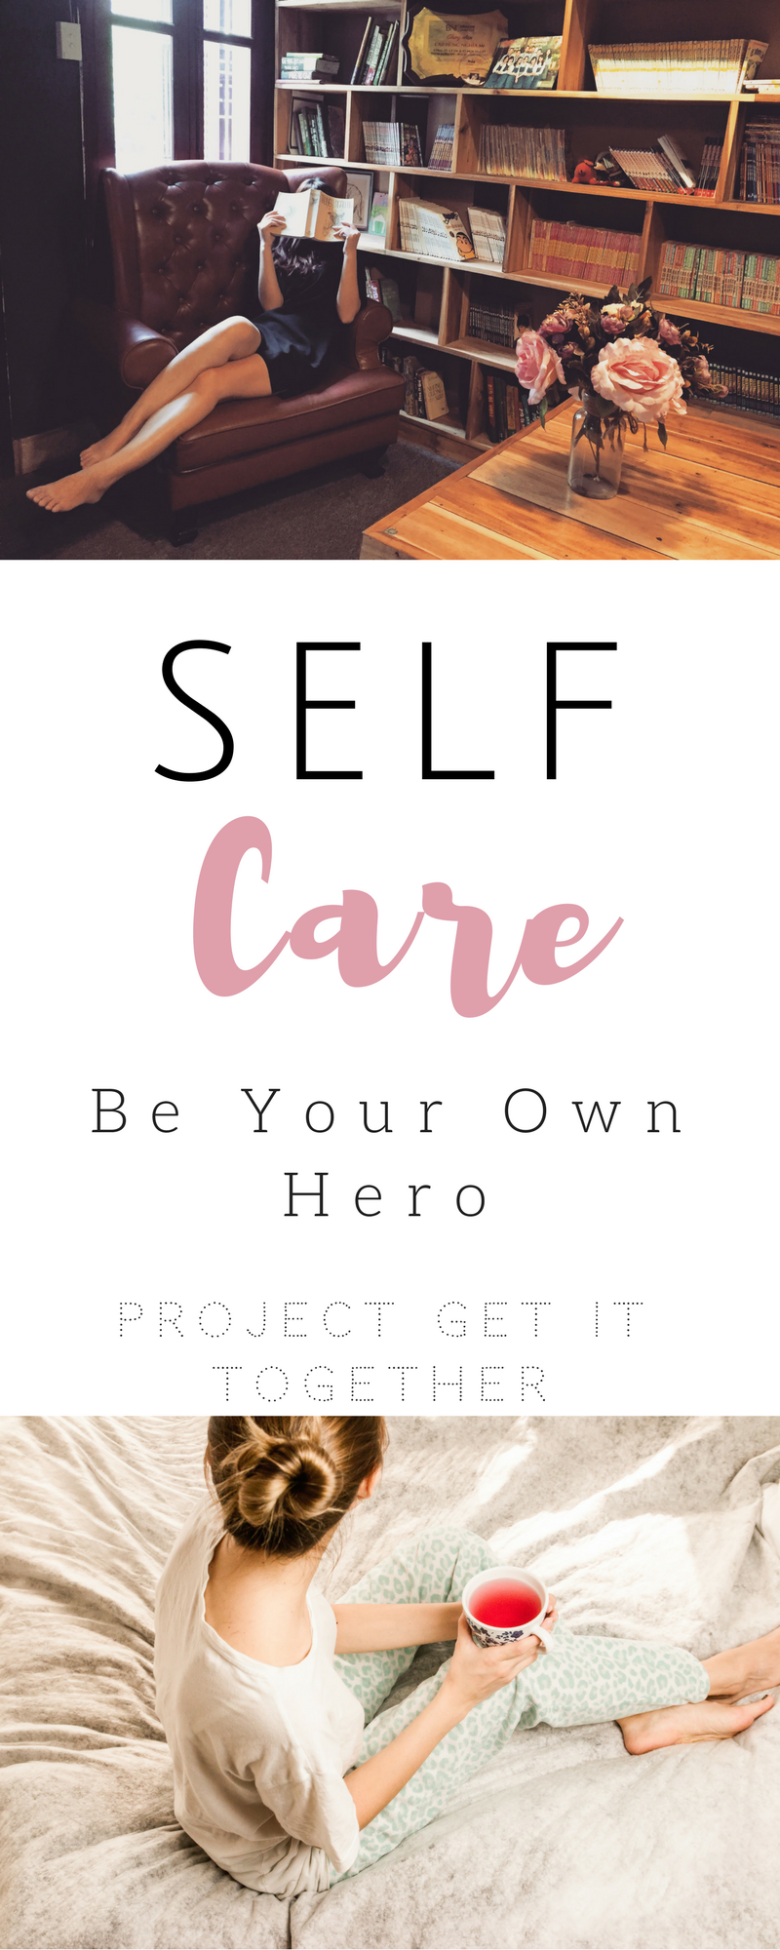 Self Care: Be Your Own Hero - Project Get It Together